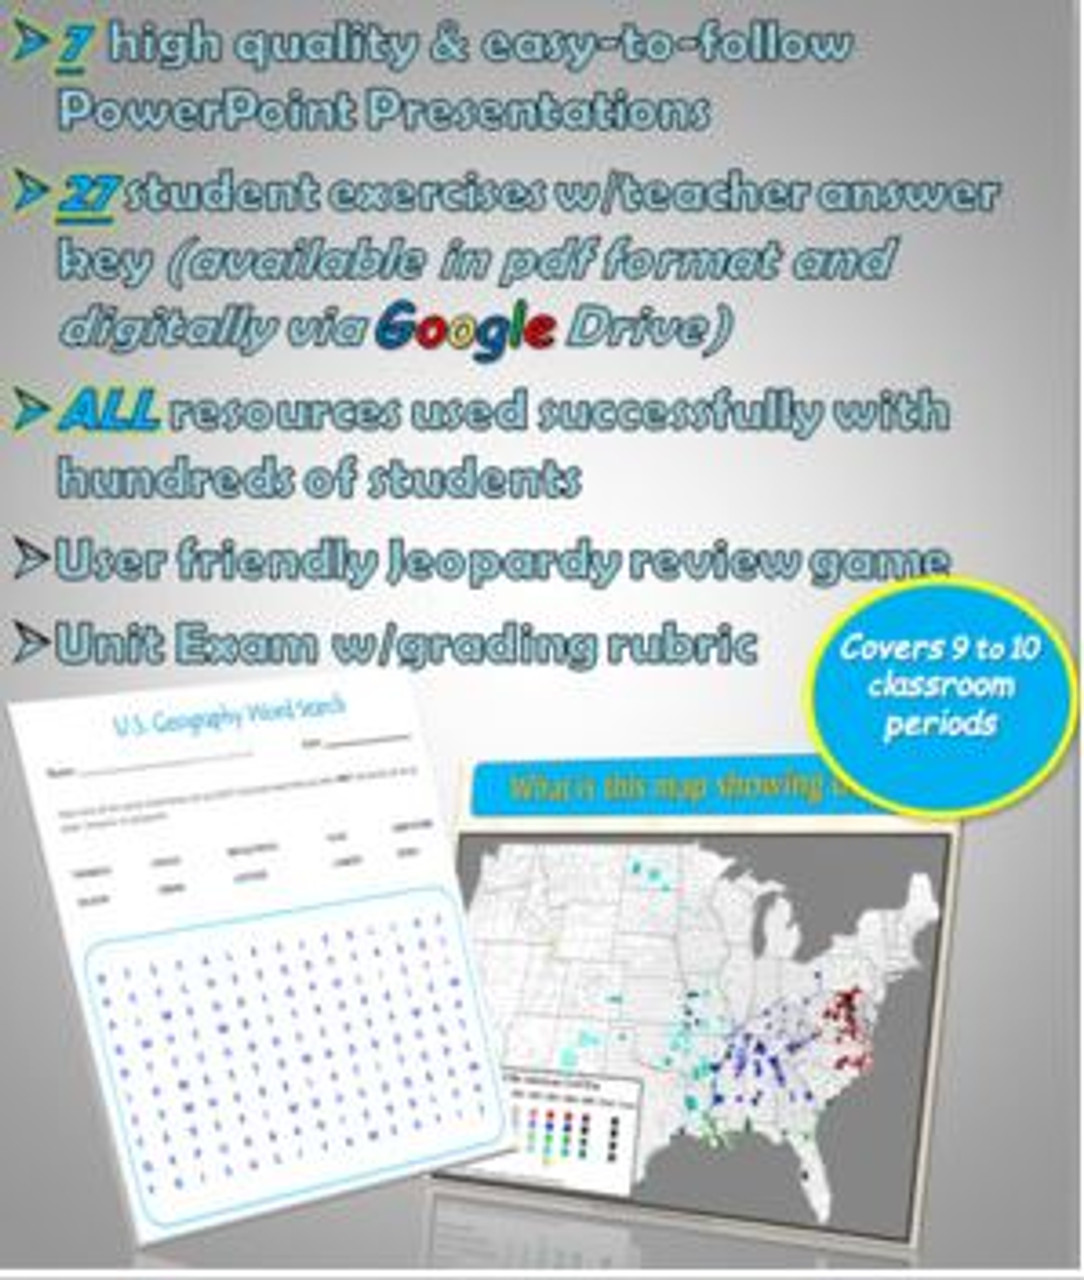 Includes numerous high quality resources completely ready for use in your classroom!